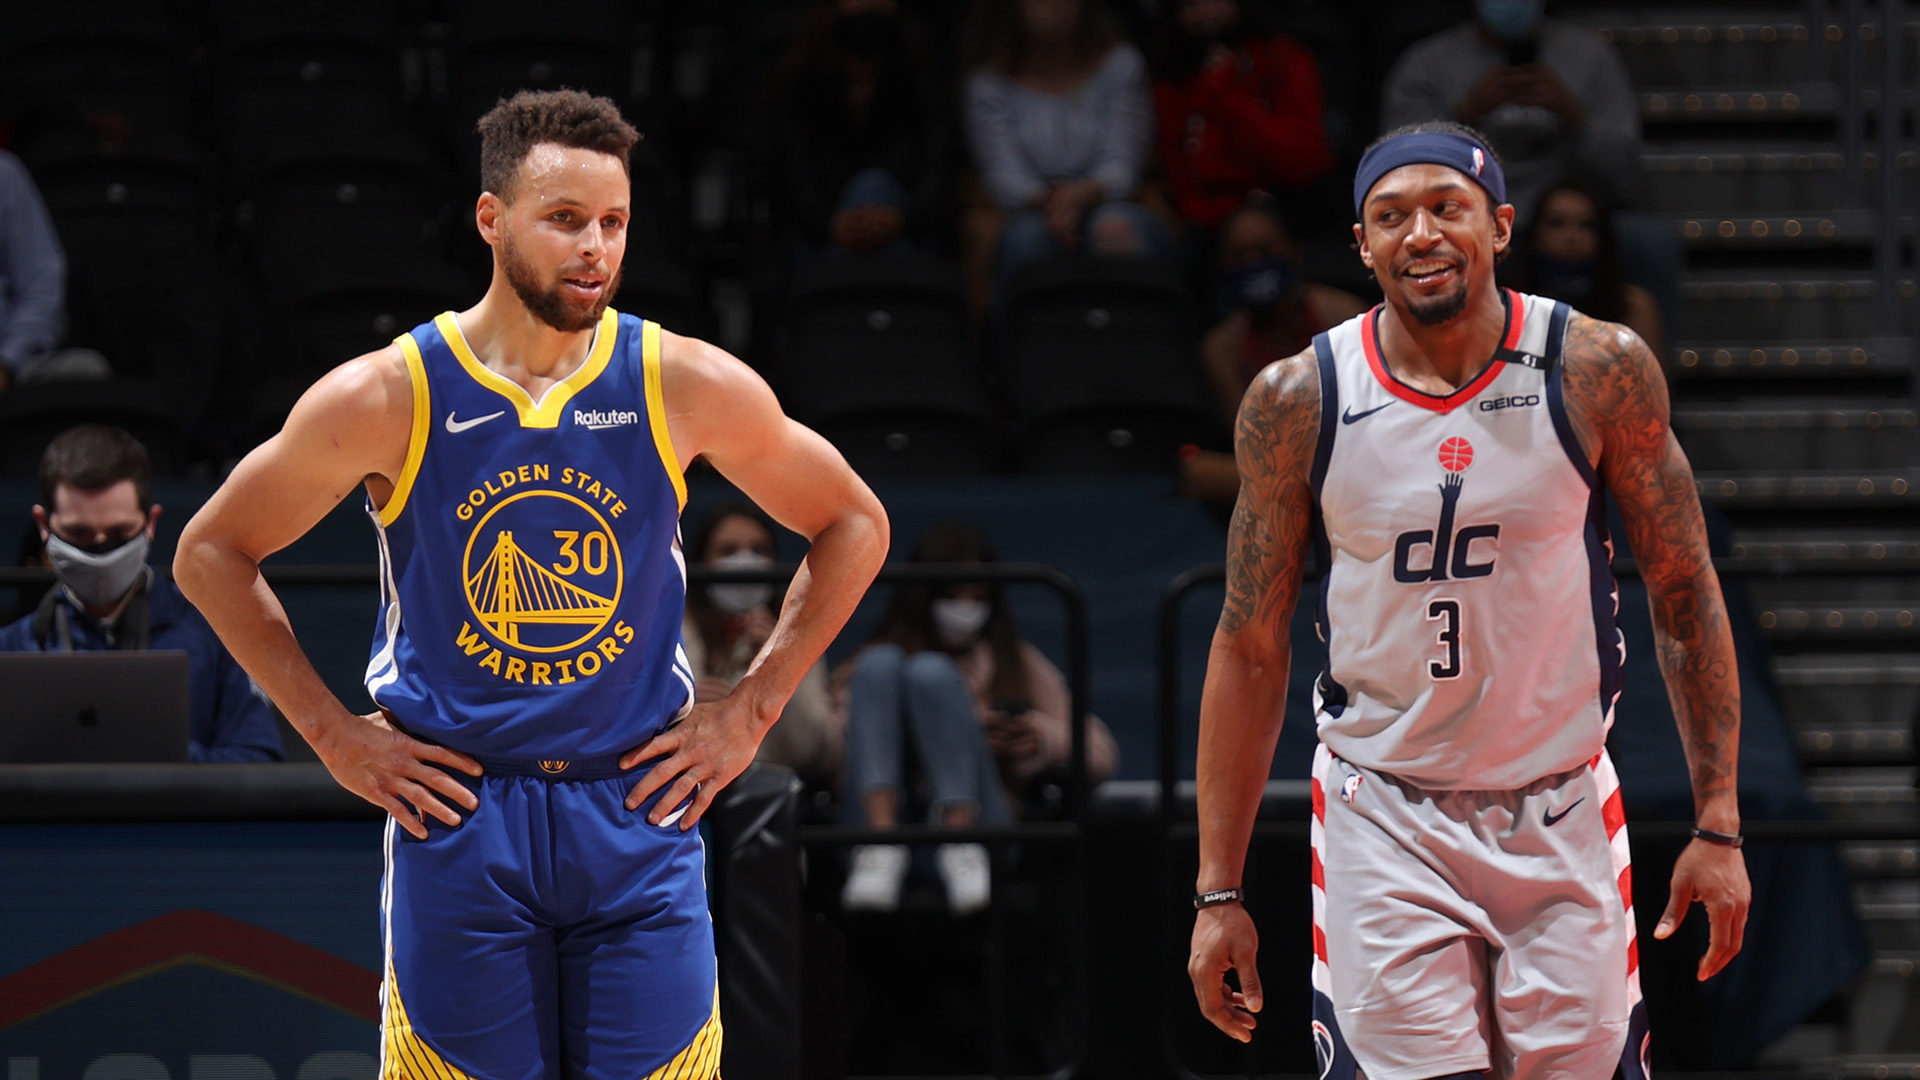 Wizards keep streaking as Curry has off night